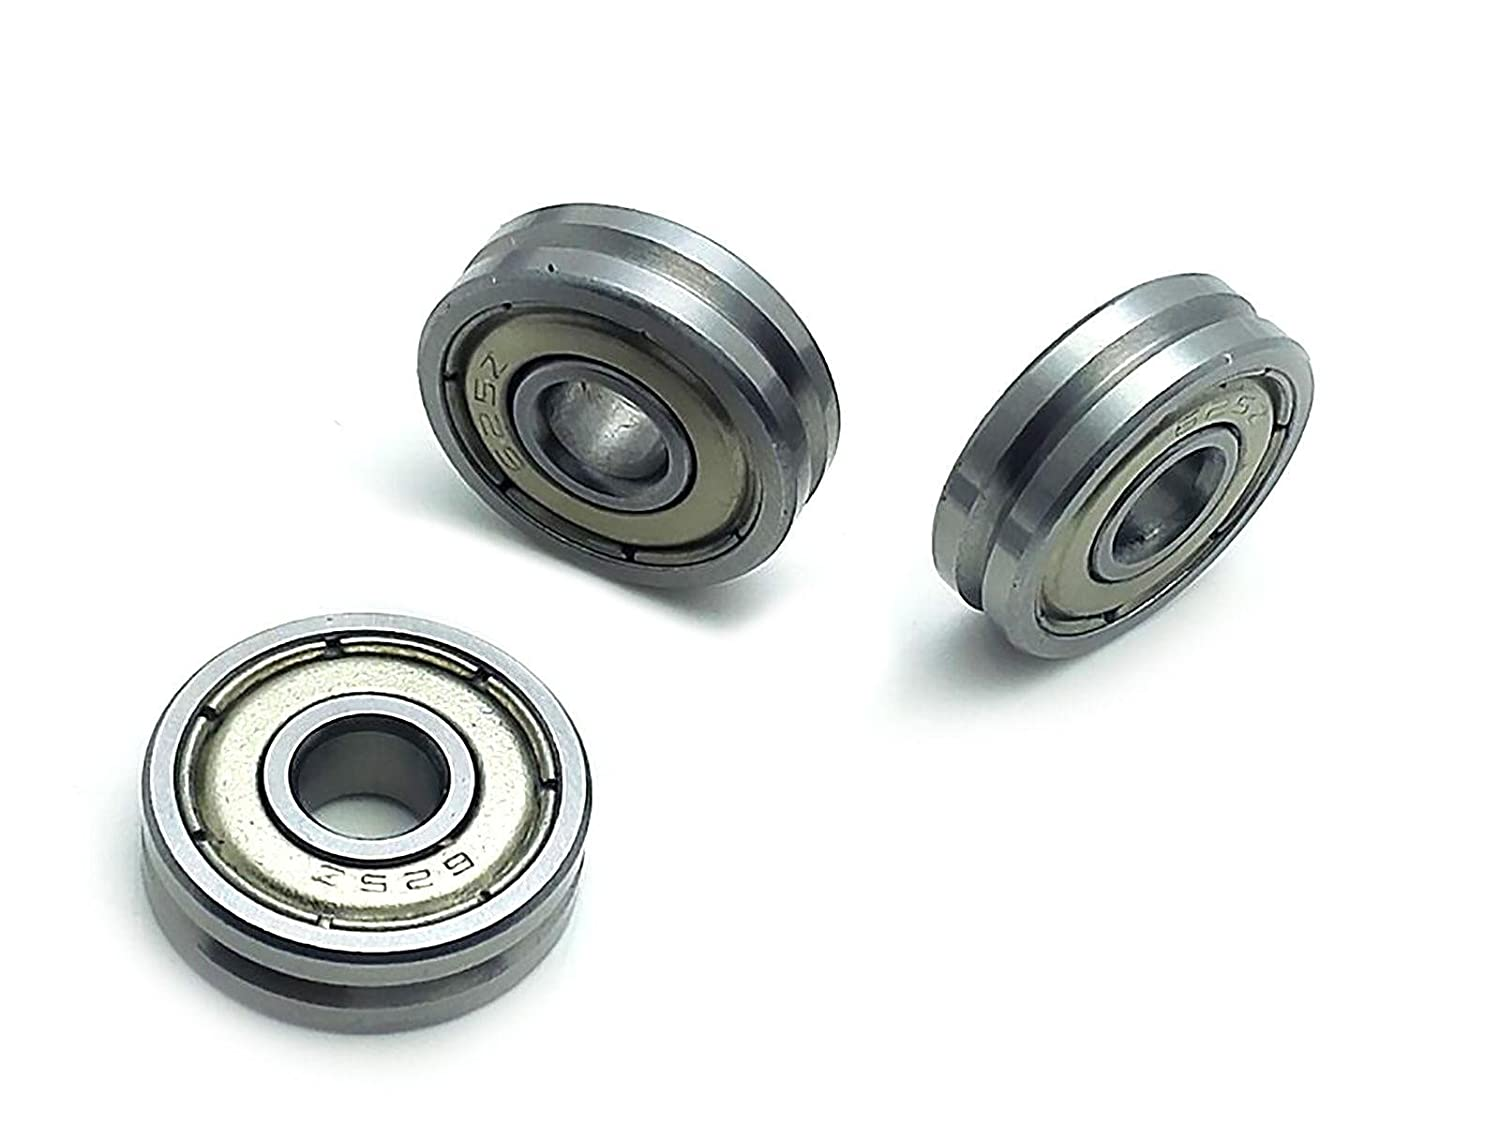 5mm V Groove 90/° Pulley Rail Track Bearings Deep Groove Ball Bearings 10pcs V625ZZ 5 16 Pre-Lubricated and Stable Performance and Cost Effective